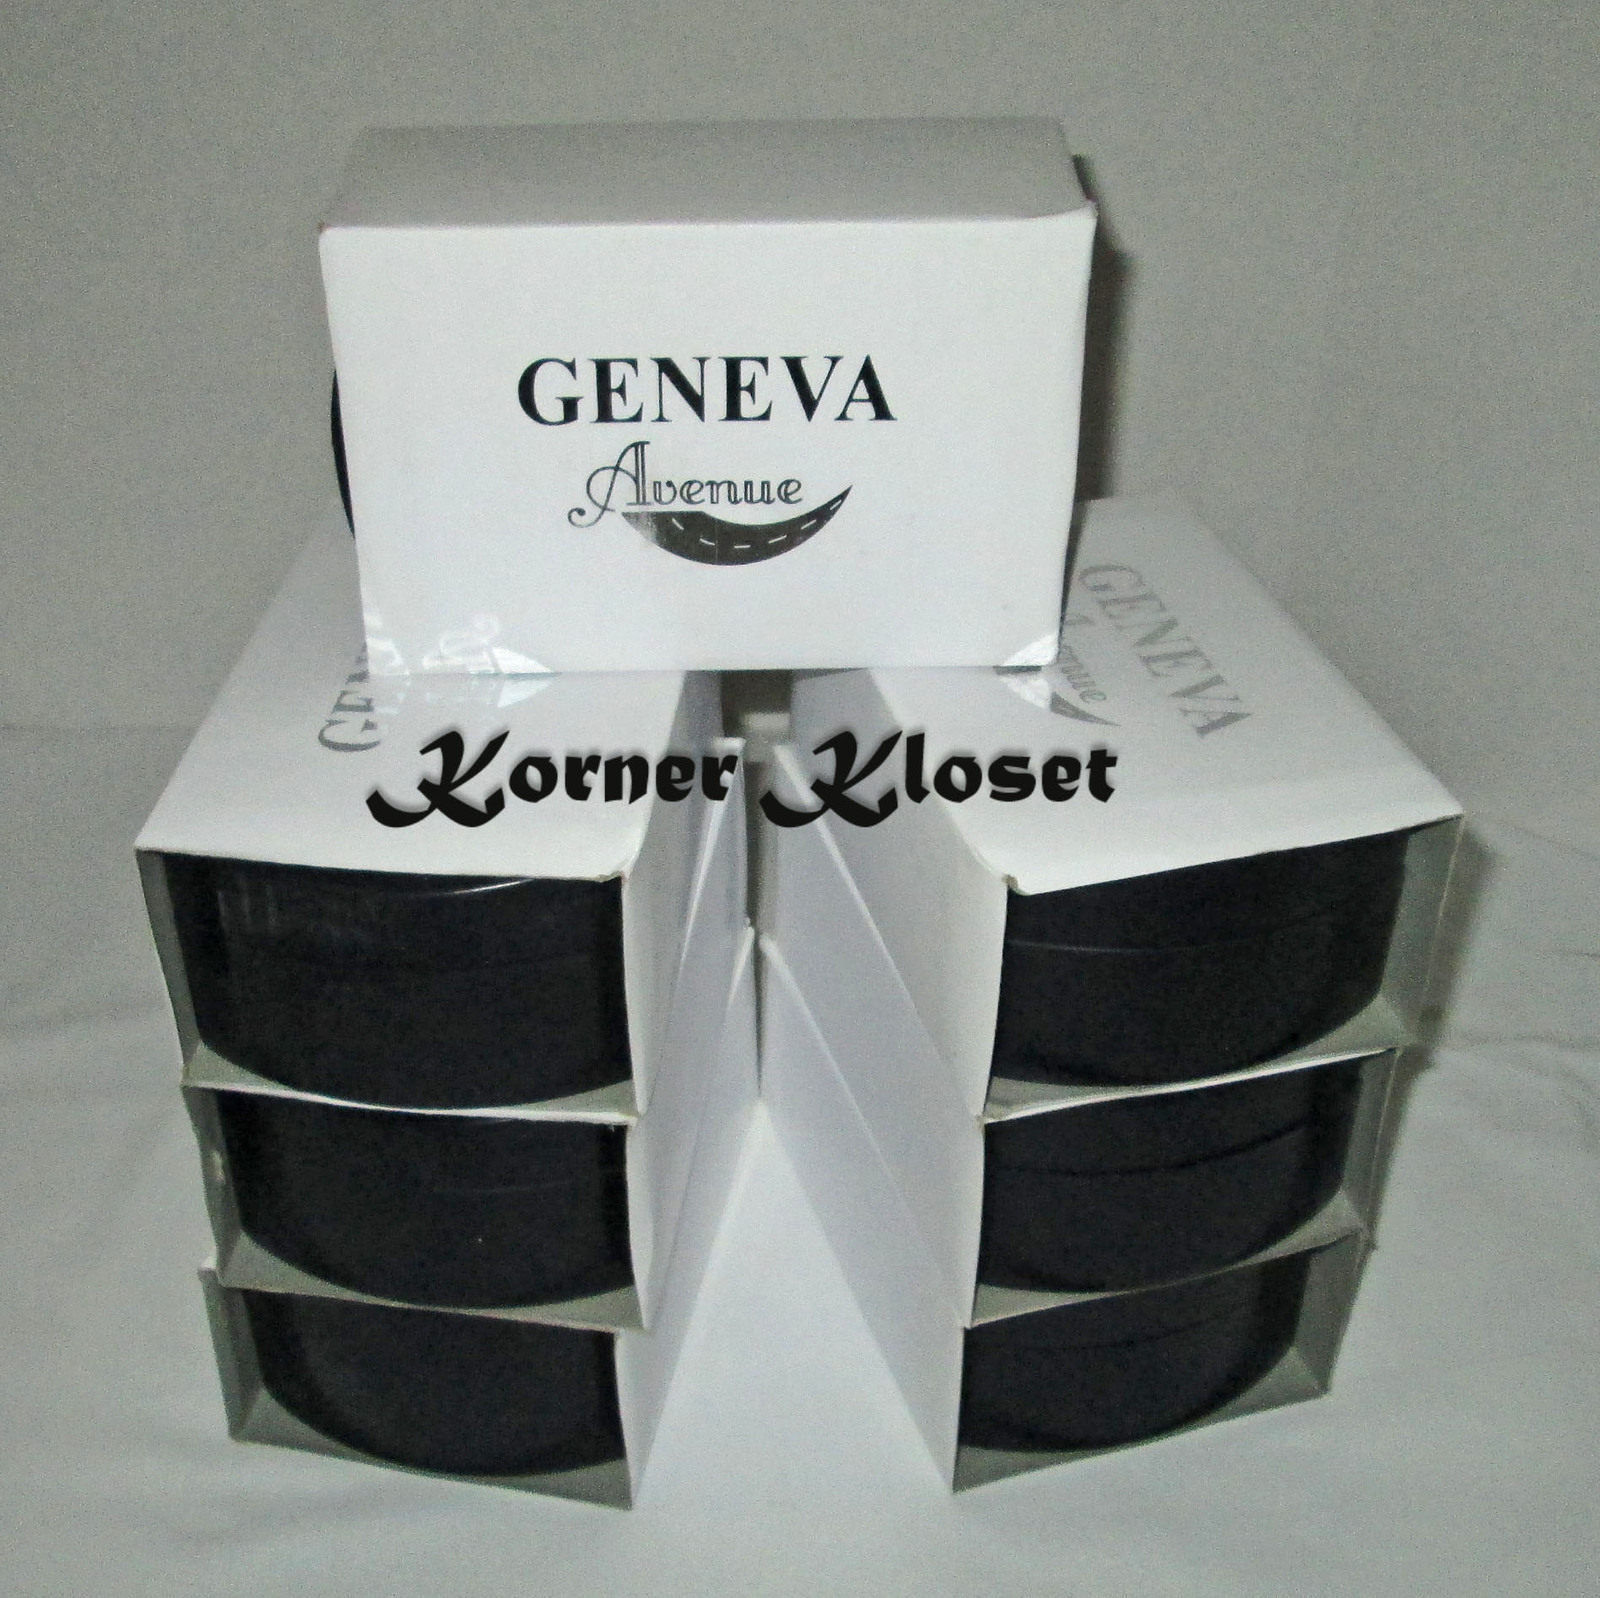 Seven Sets - Geneva Wristwatch and Sunglasses in Cases - NIB